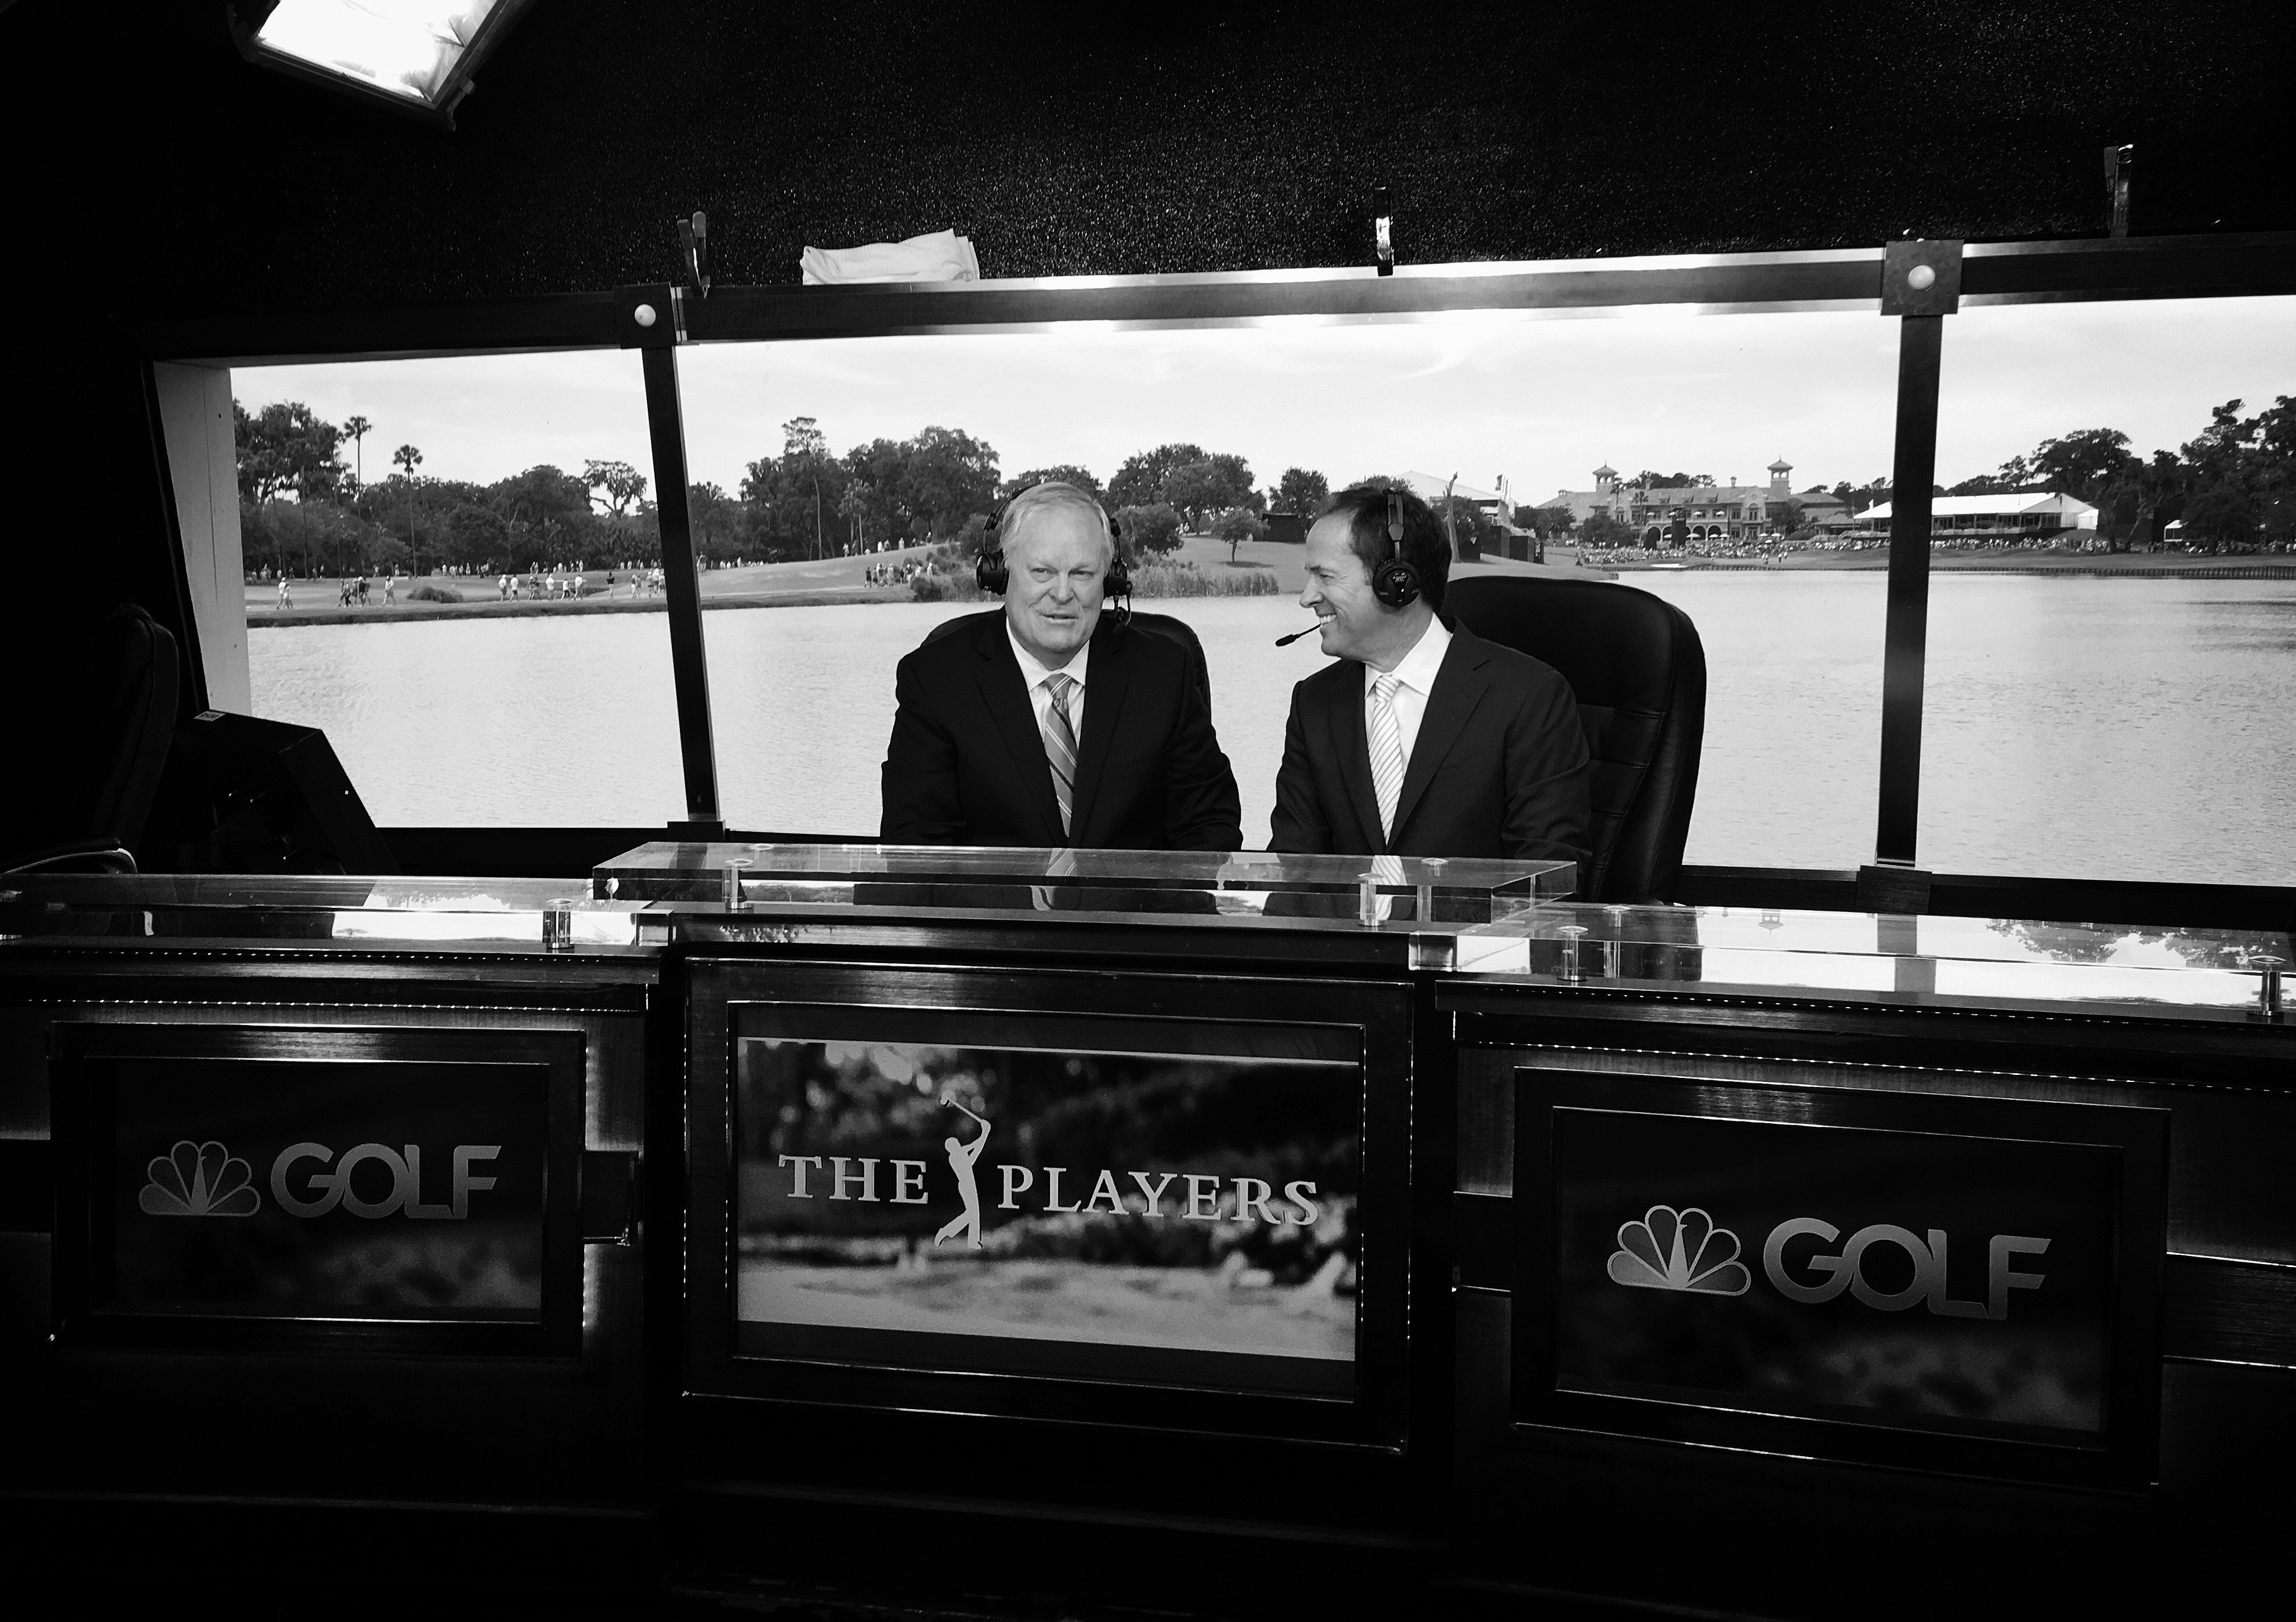 PONTE VEDRA BEACH, FL - MAY 15: NBC sports personalities Johnny Miller and Dan Hicks broadcast live from the studio behind 18 tee during the final round of THE PLAYERS Championship on THE PLAYERS Stadium Course at TPC Sawgrass on May 15, 2016. (©2016 Brad Mangin/PGA TOUR)